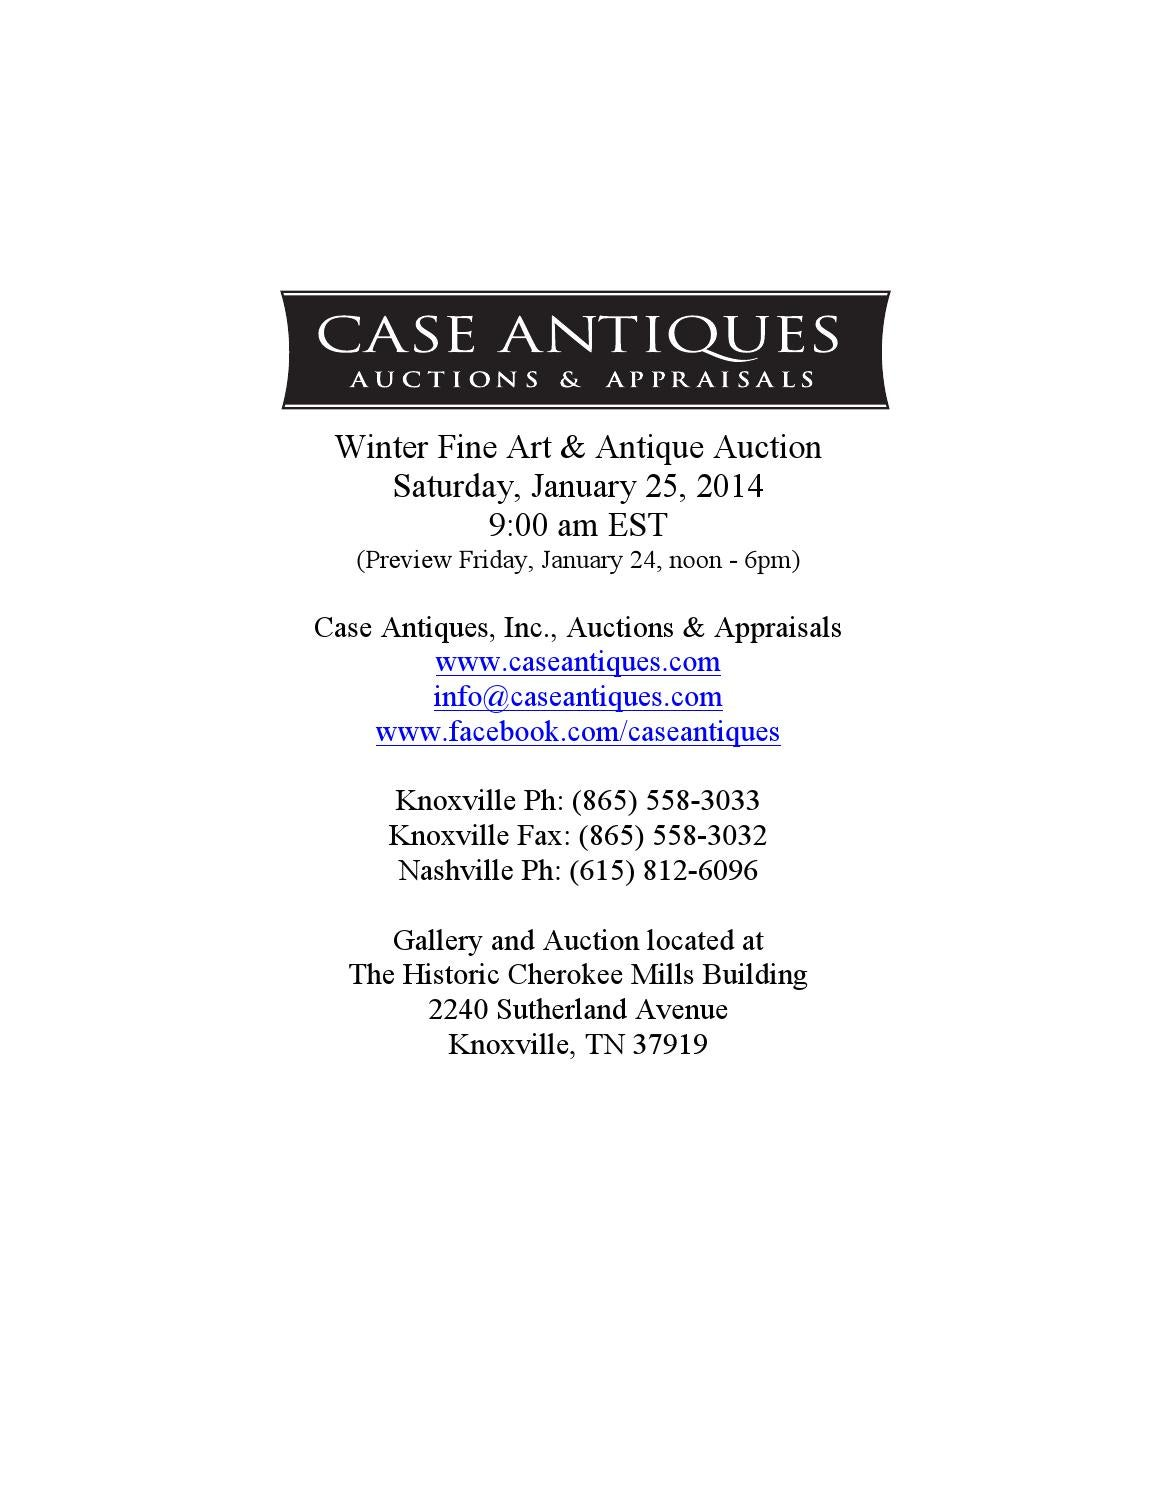 Jan 25 2014 catalog with terms v5 by Case Antiques dfe4d5c8d0cd